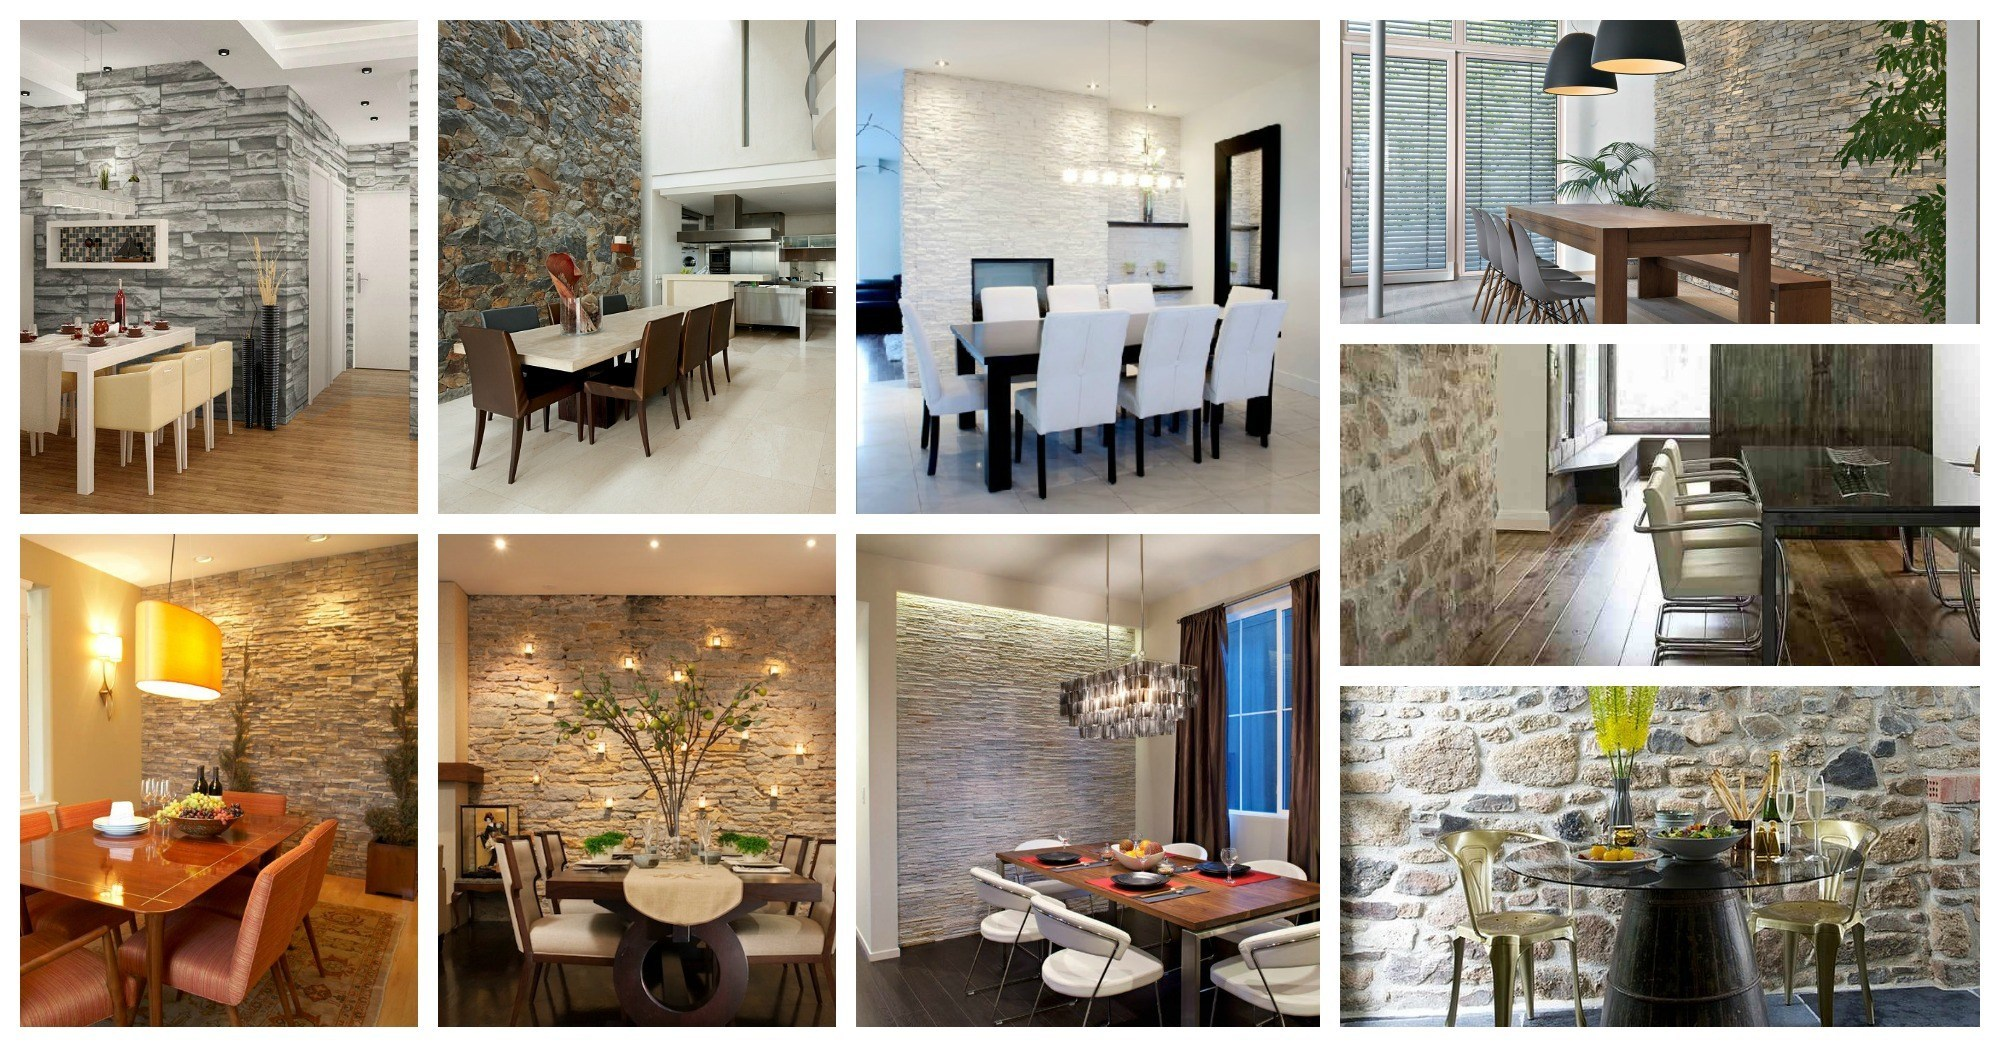 Delightful Stone Wall Dining Rooms That Will Amaze You